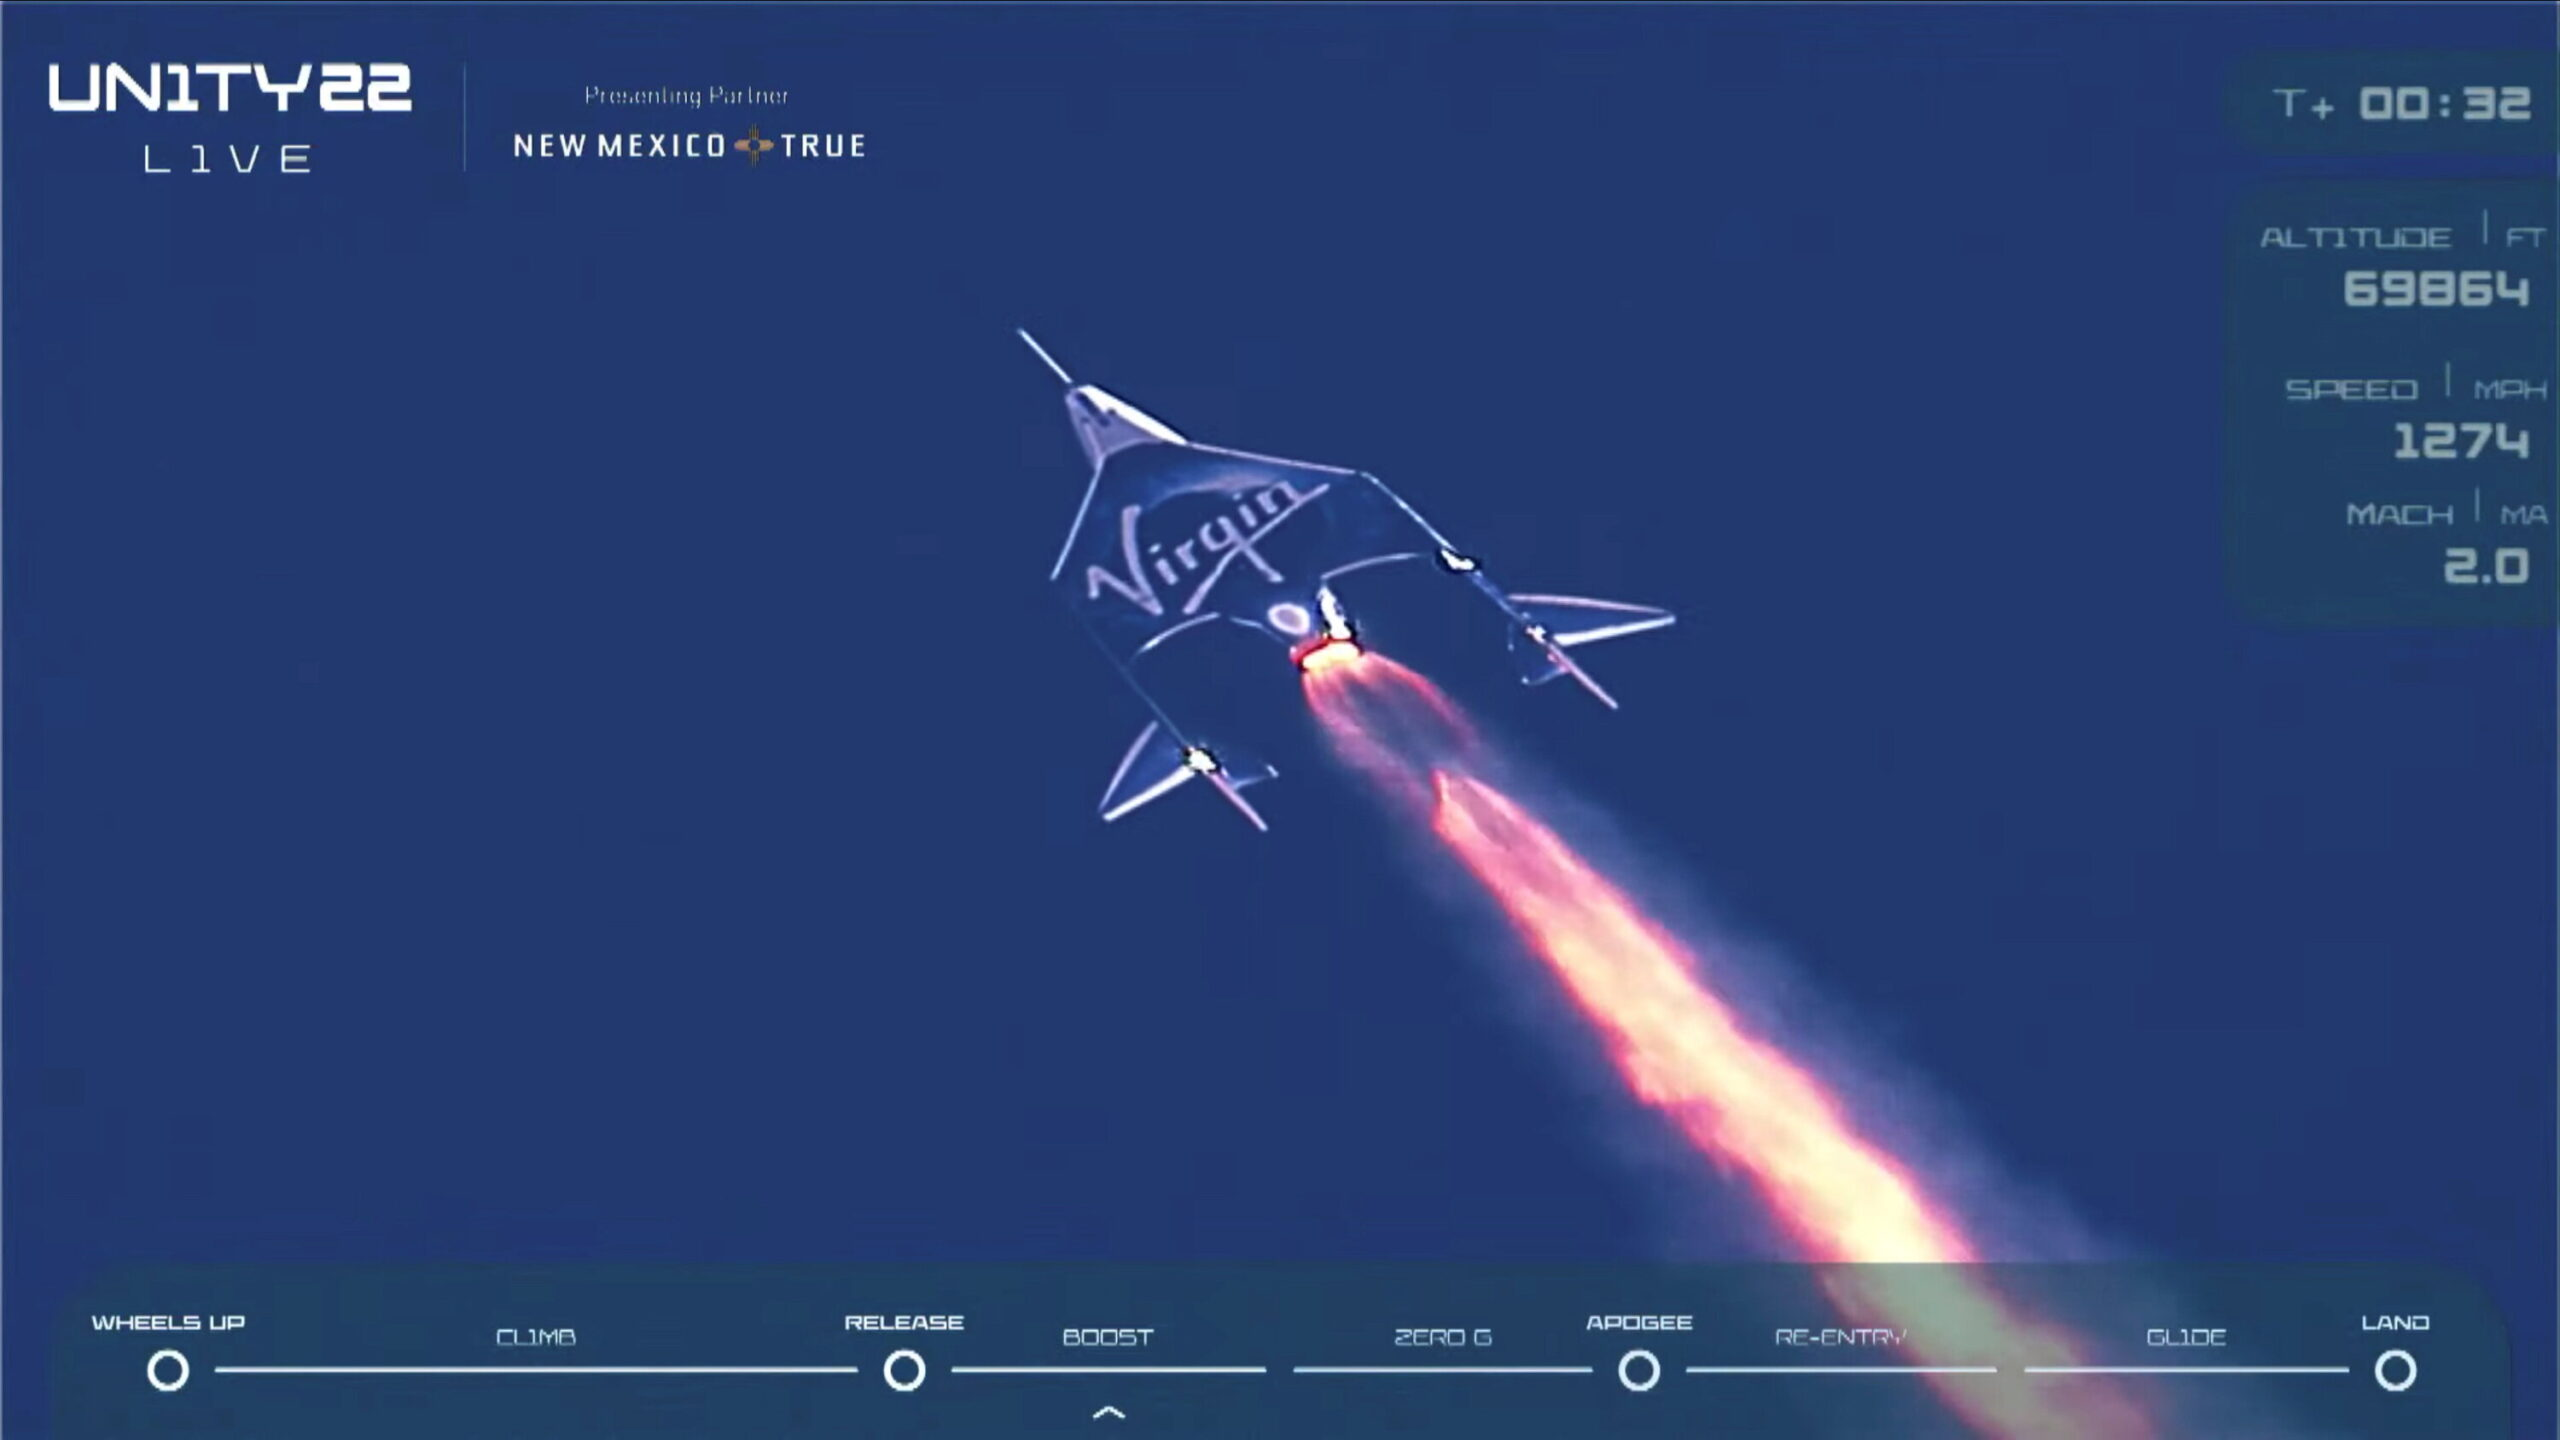 Branson Beats Jeff Bezos to Space, Aiming to Open Space Tourism 1